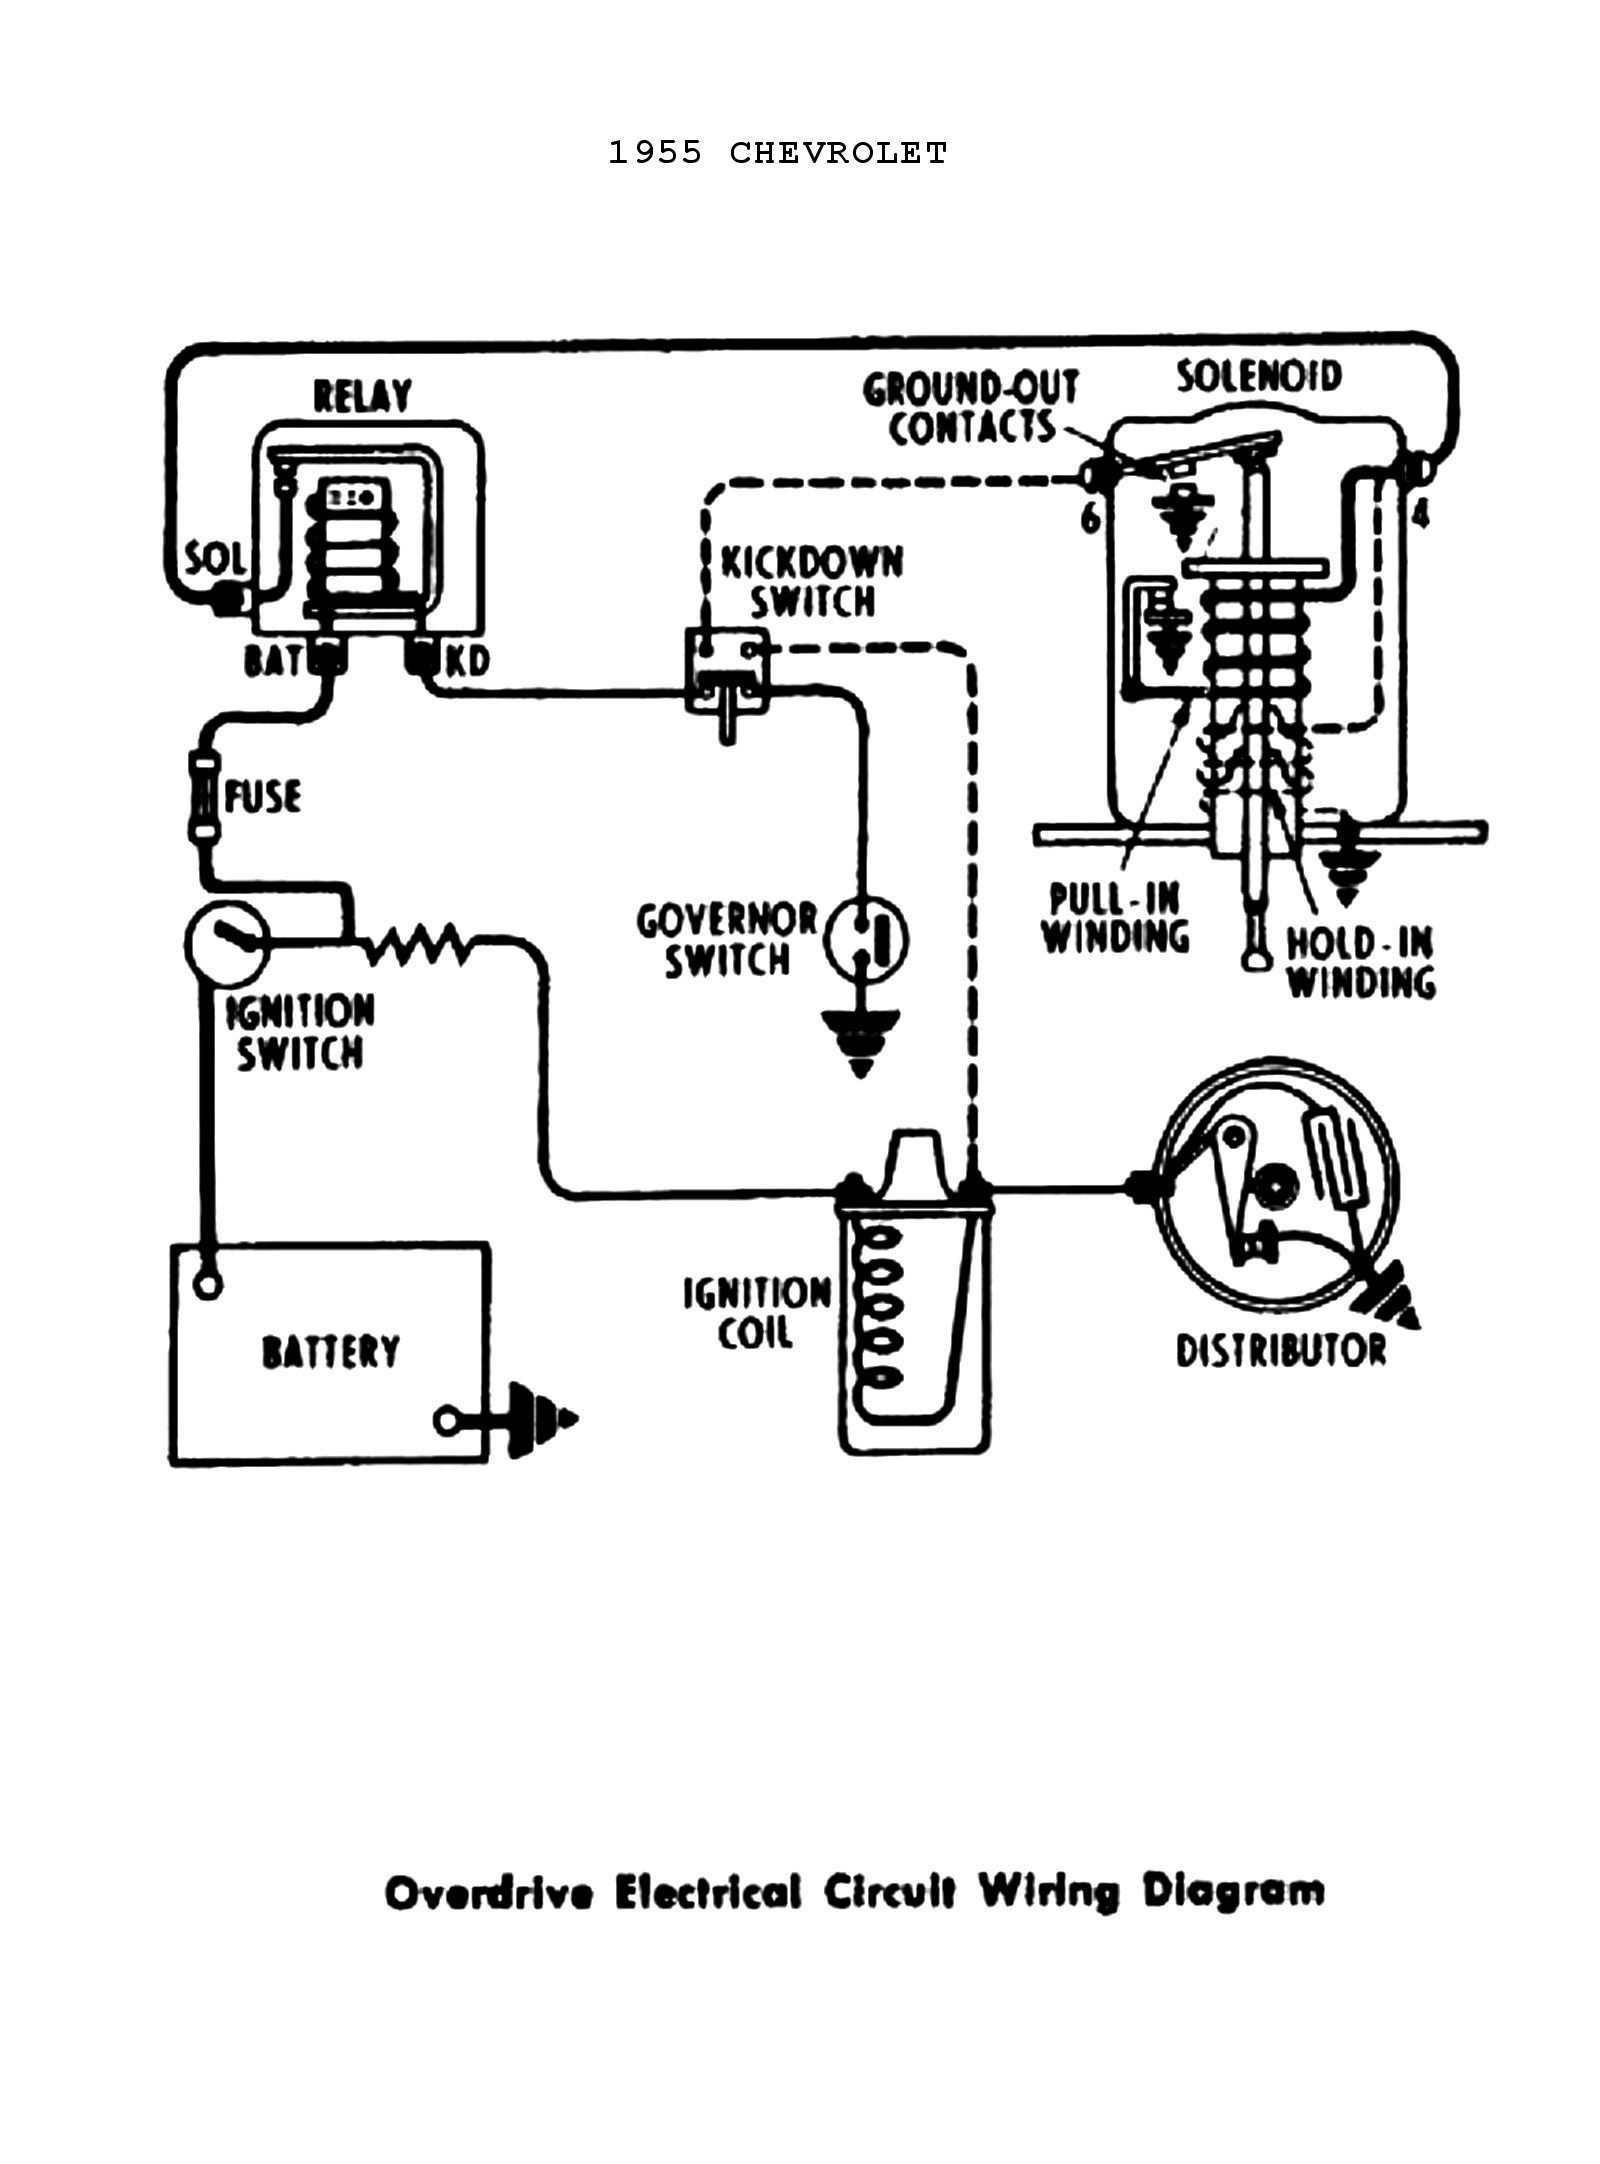 1960 Chevy Pickup Wiring Diagram Library As Ford Mustang Starter Solenoid Furthermore Focus 1953 Truck 1955 Fuel Tank Ignition Of